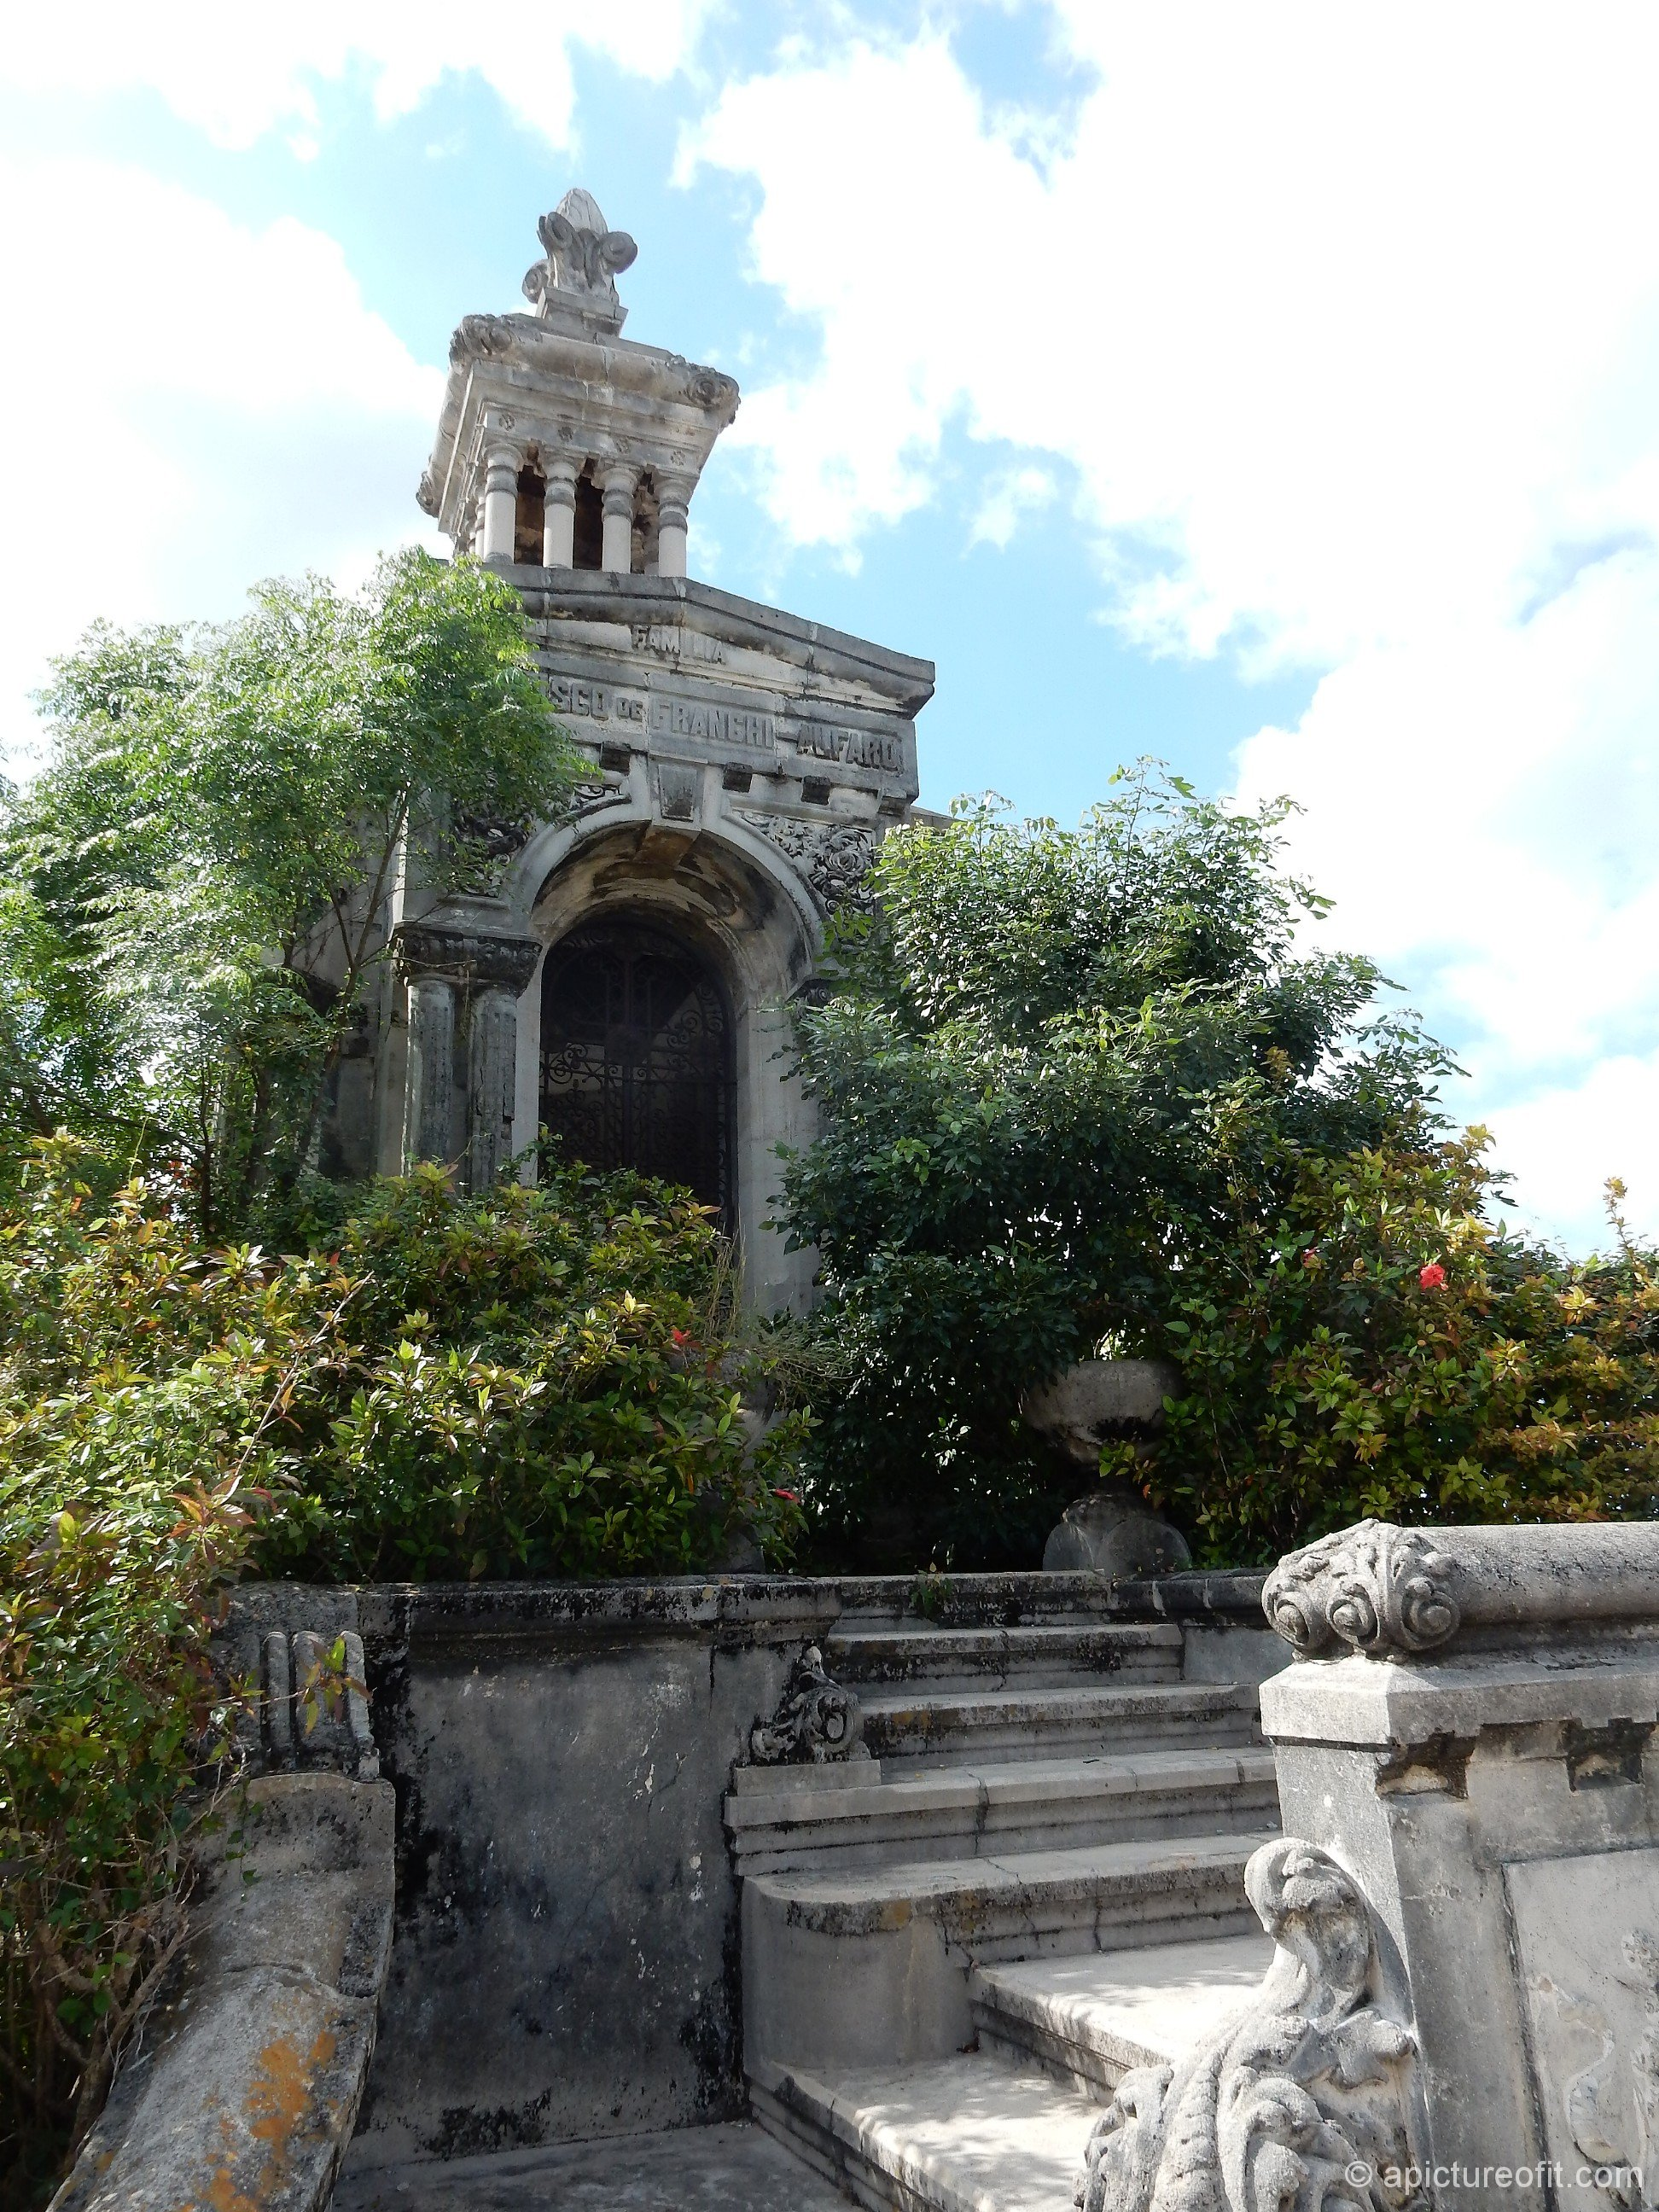 This magnificent old mausoleum was overgrown by trees.  The family that loved and honored this memorial are no longer around to maintain what was so lovingly built